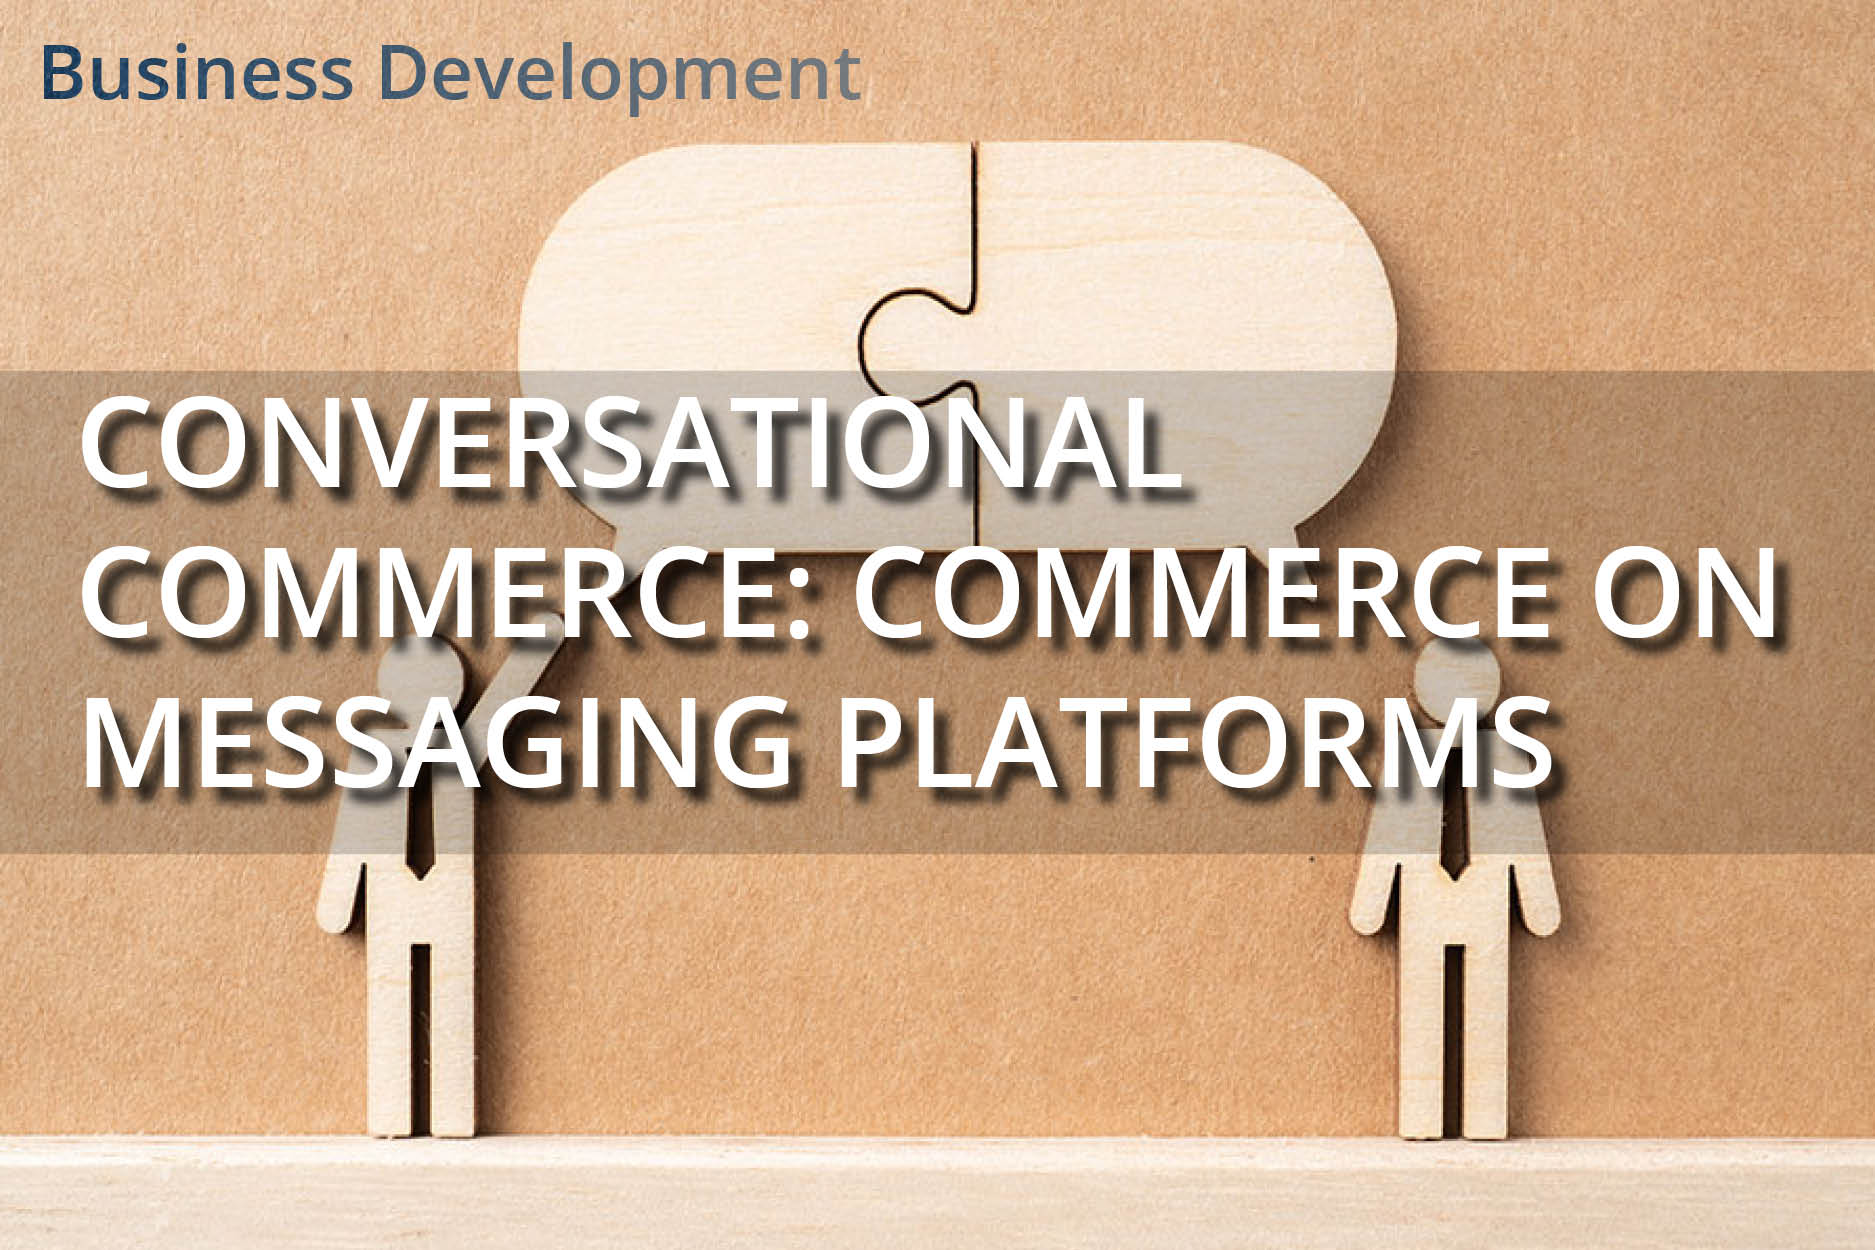 Conversational Commerce: Bringing commerce into the context of messaging platforms